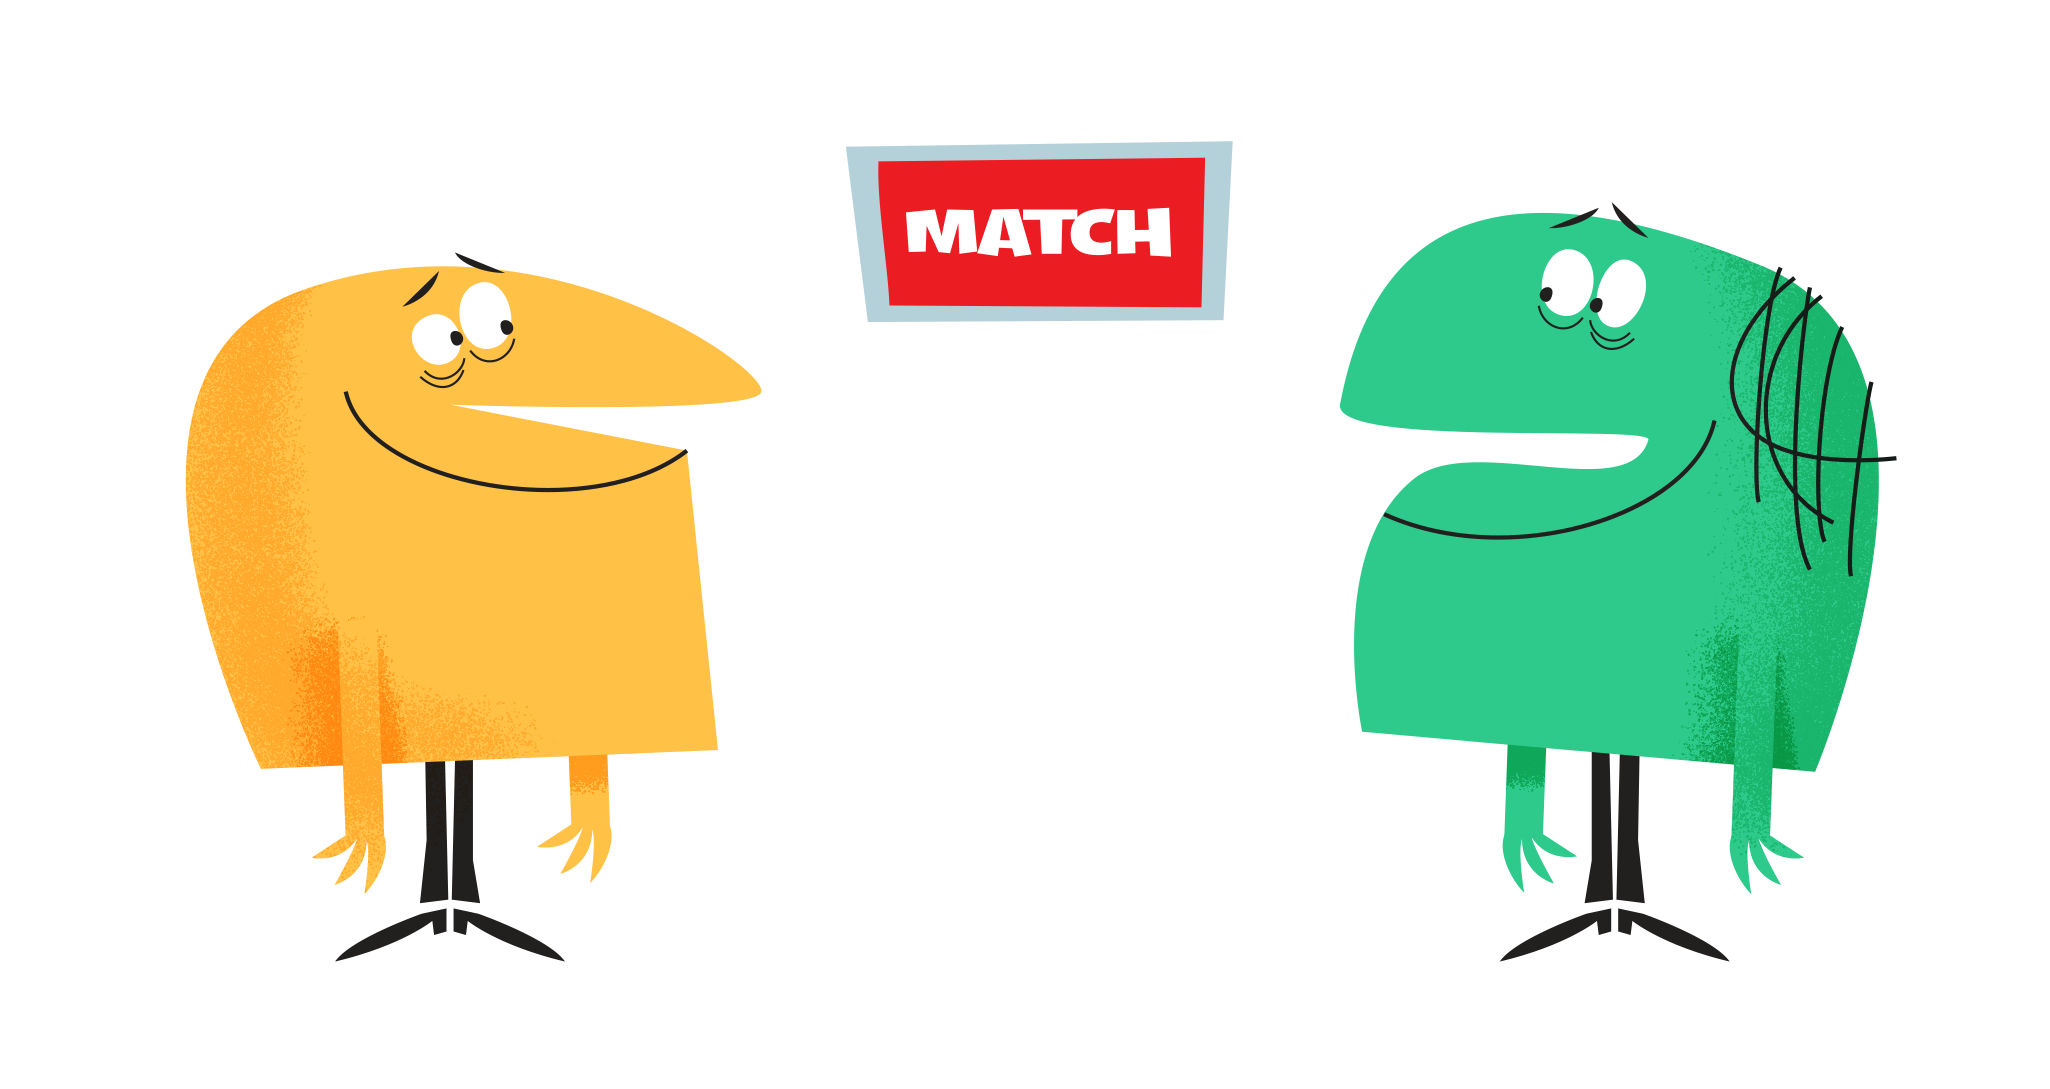 Illustration - Characters getting matched